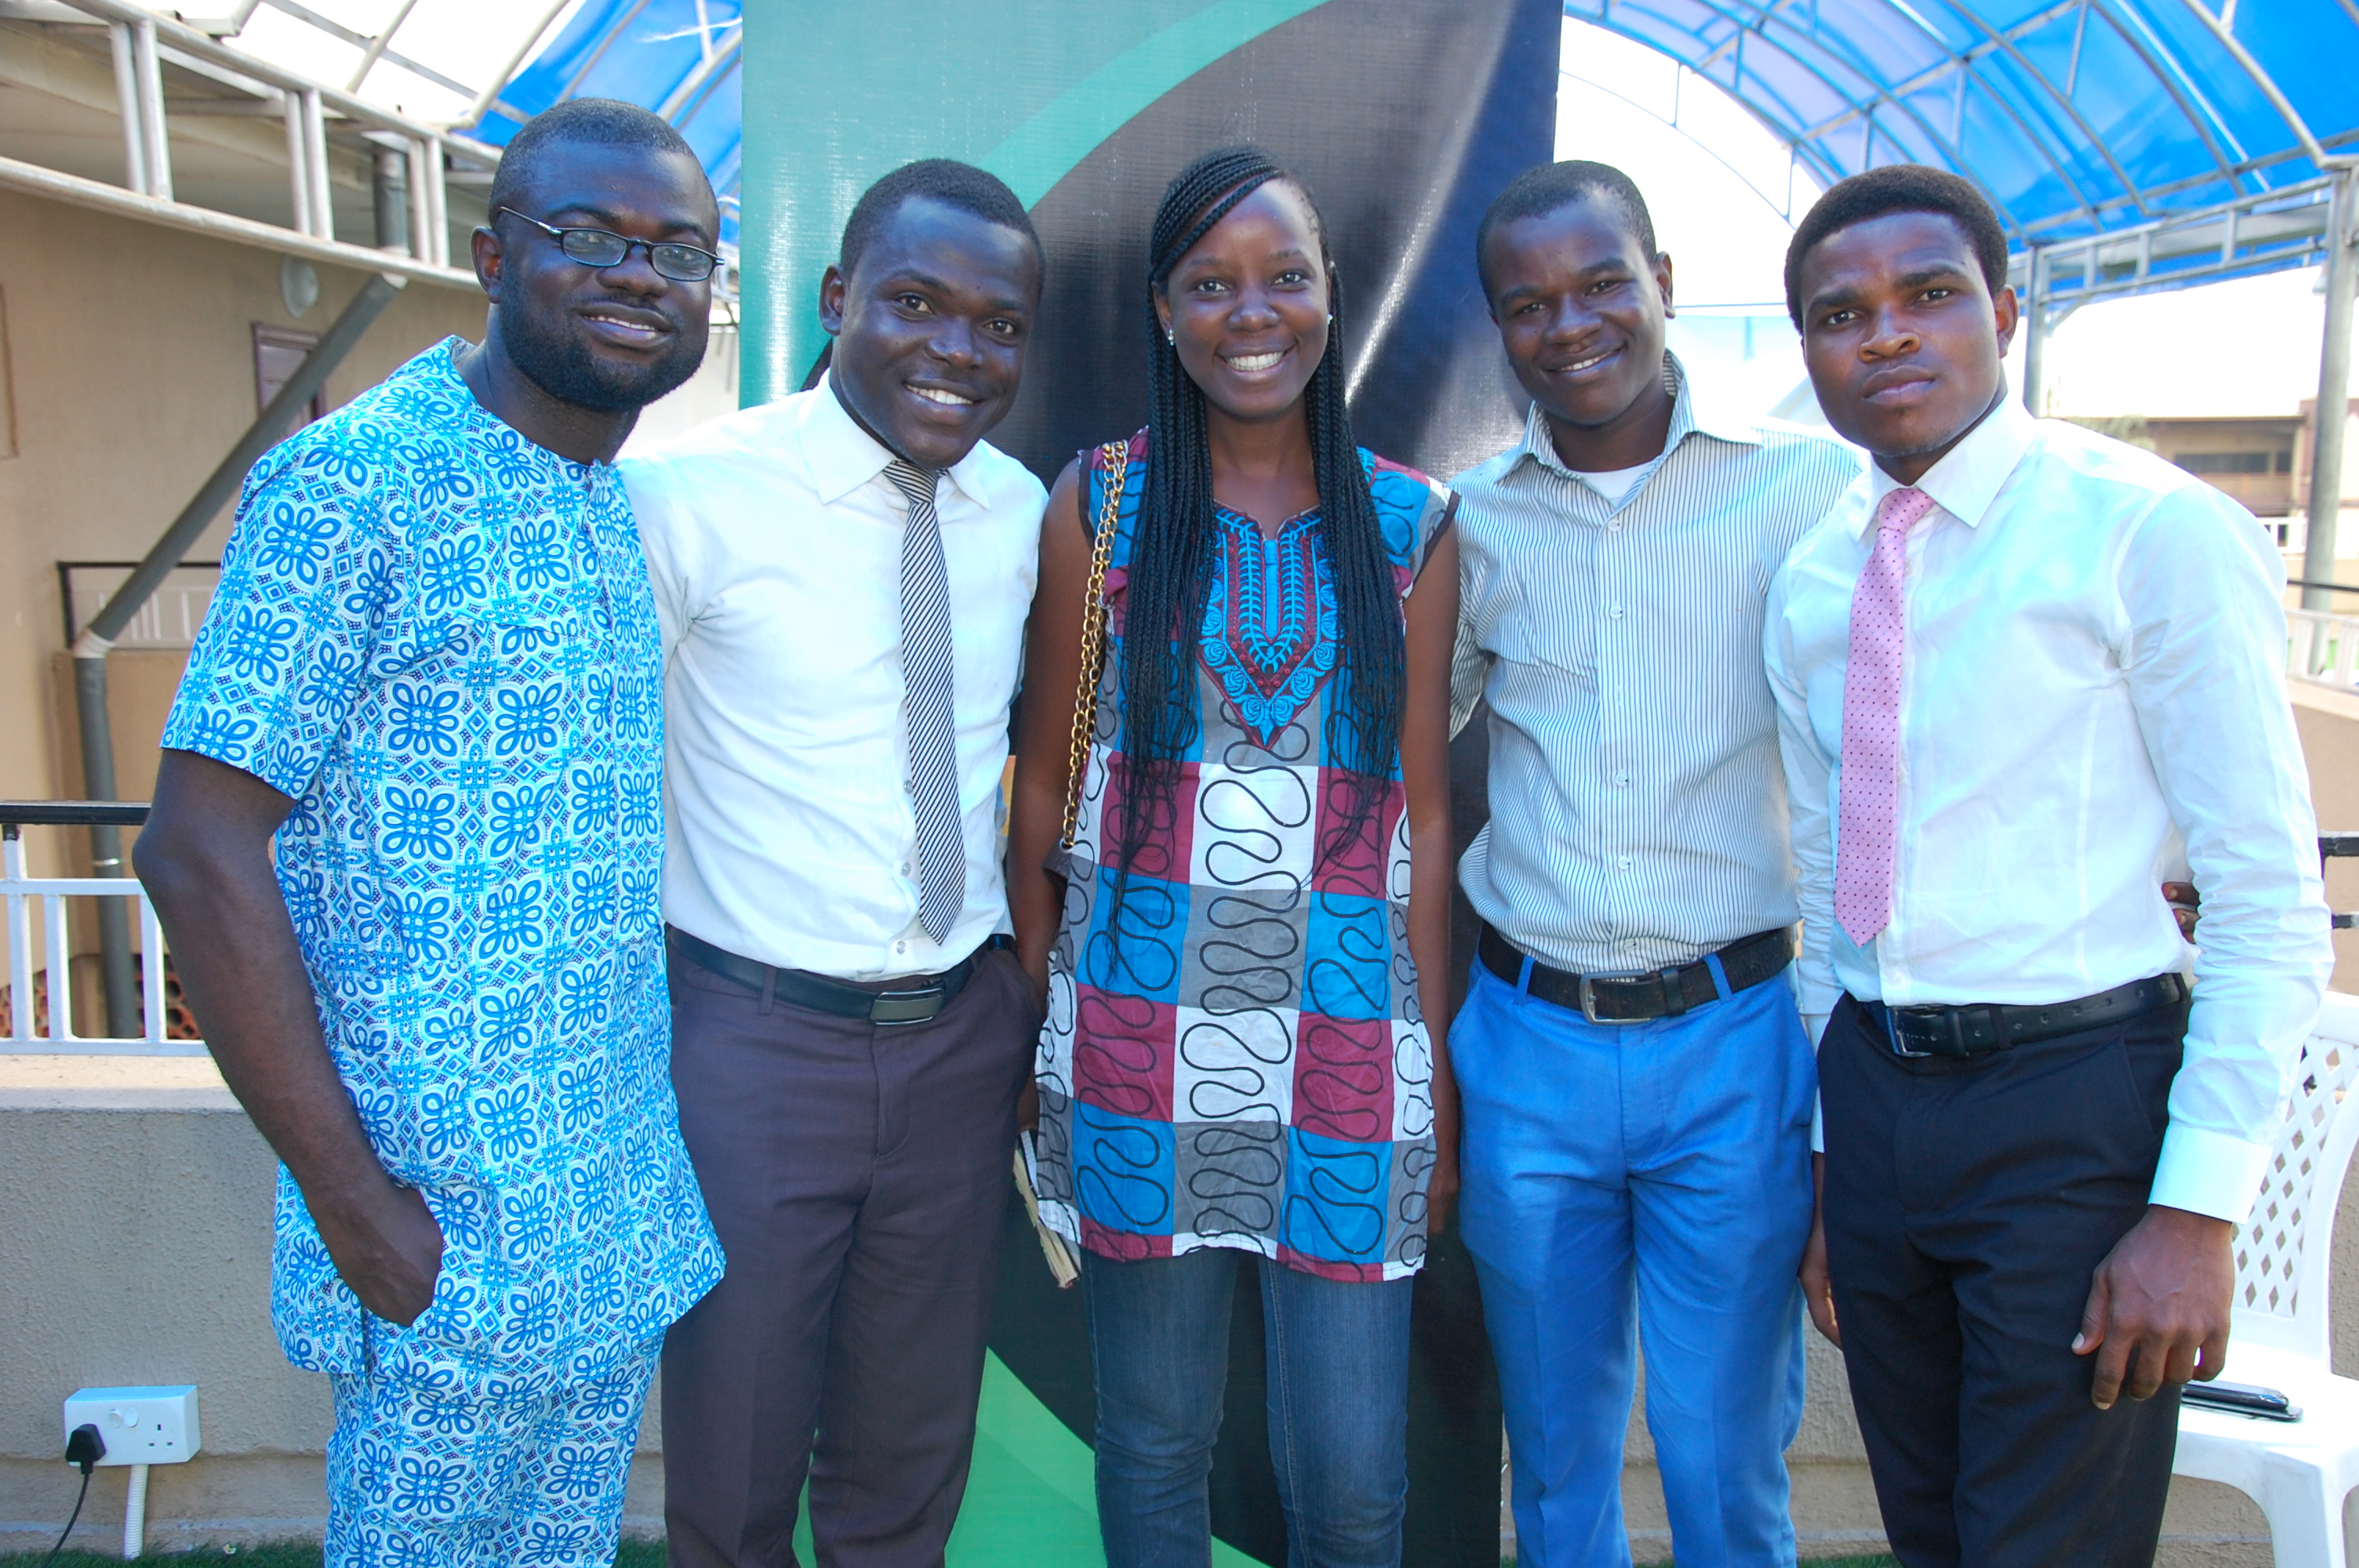 Ade Olorunjoba, Joshua oyeniyi,Ese Odiete & other guests at The Lagos TownHall Meeting